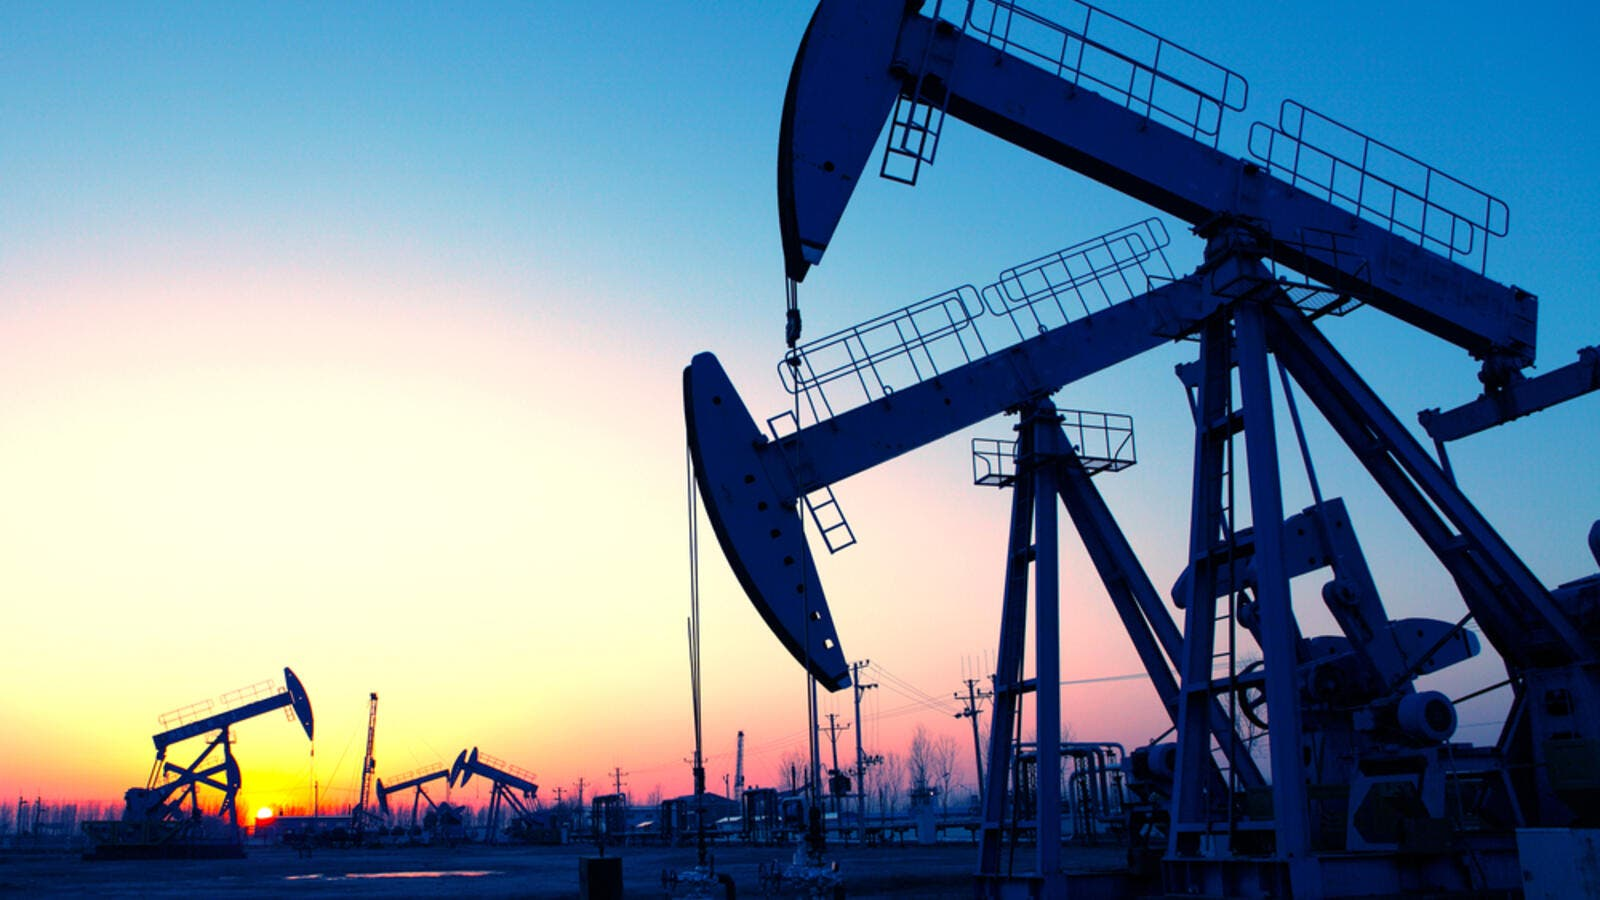 Oil prices play an important role in Saudi policy-making. (File photo)